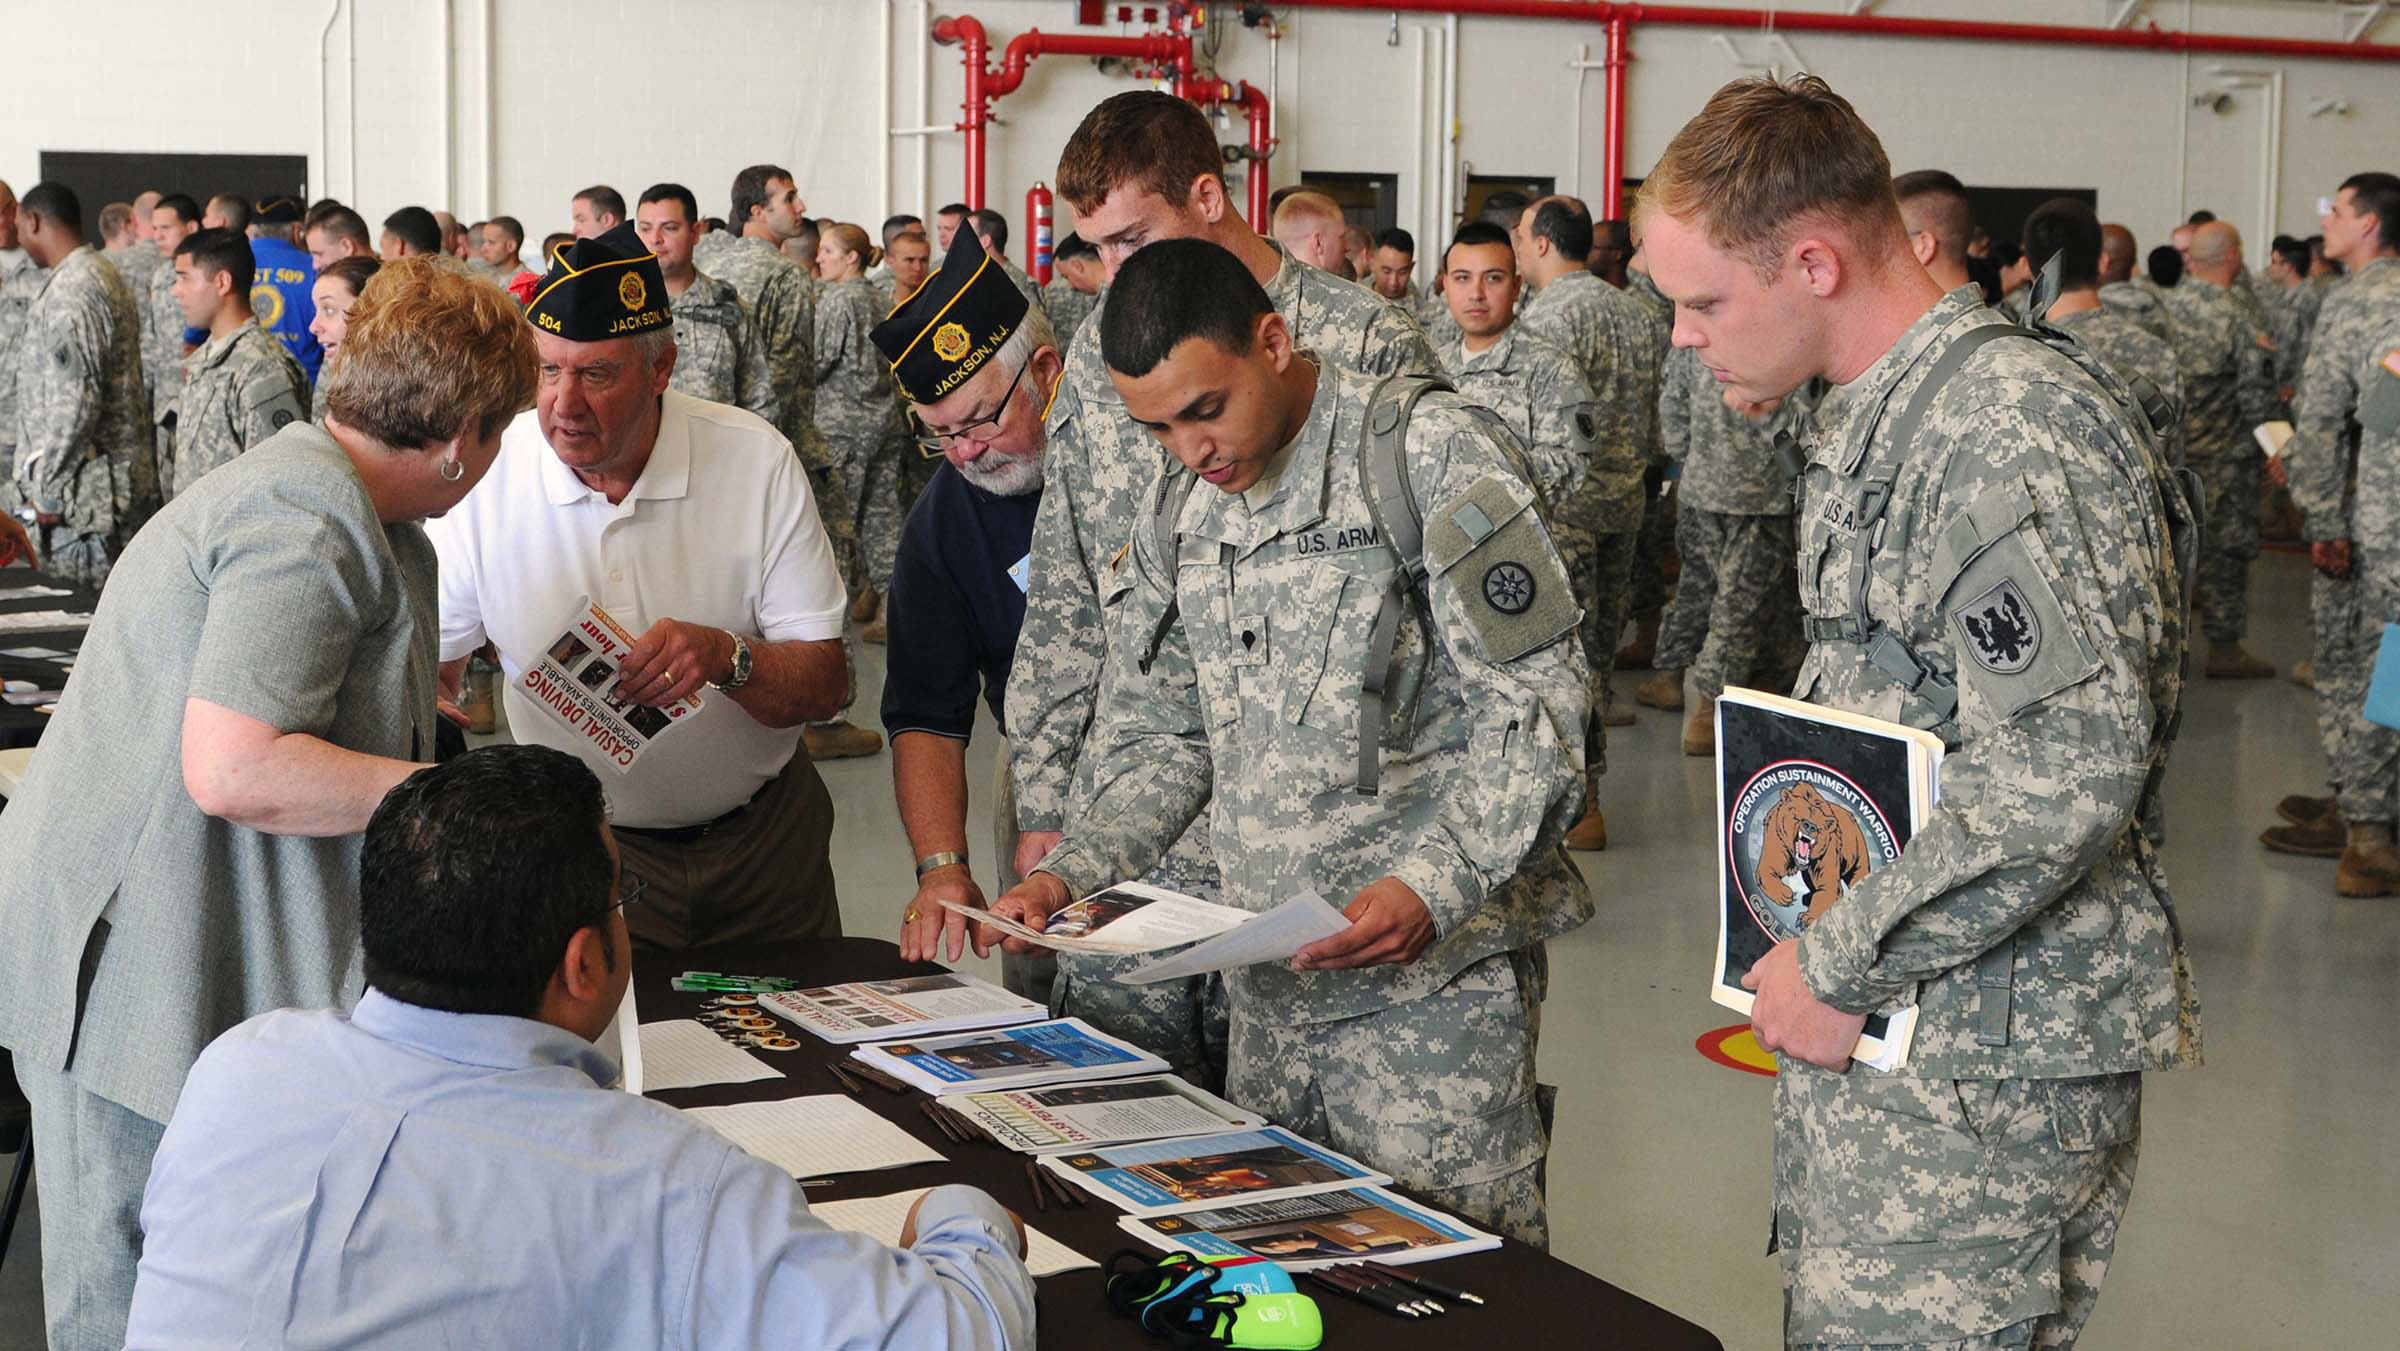 Service members learning about programs